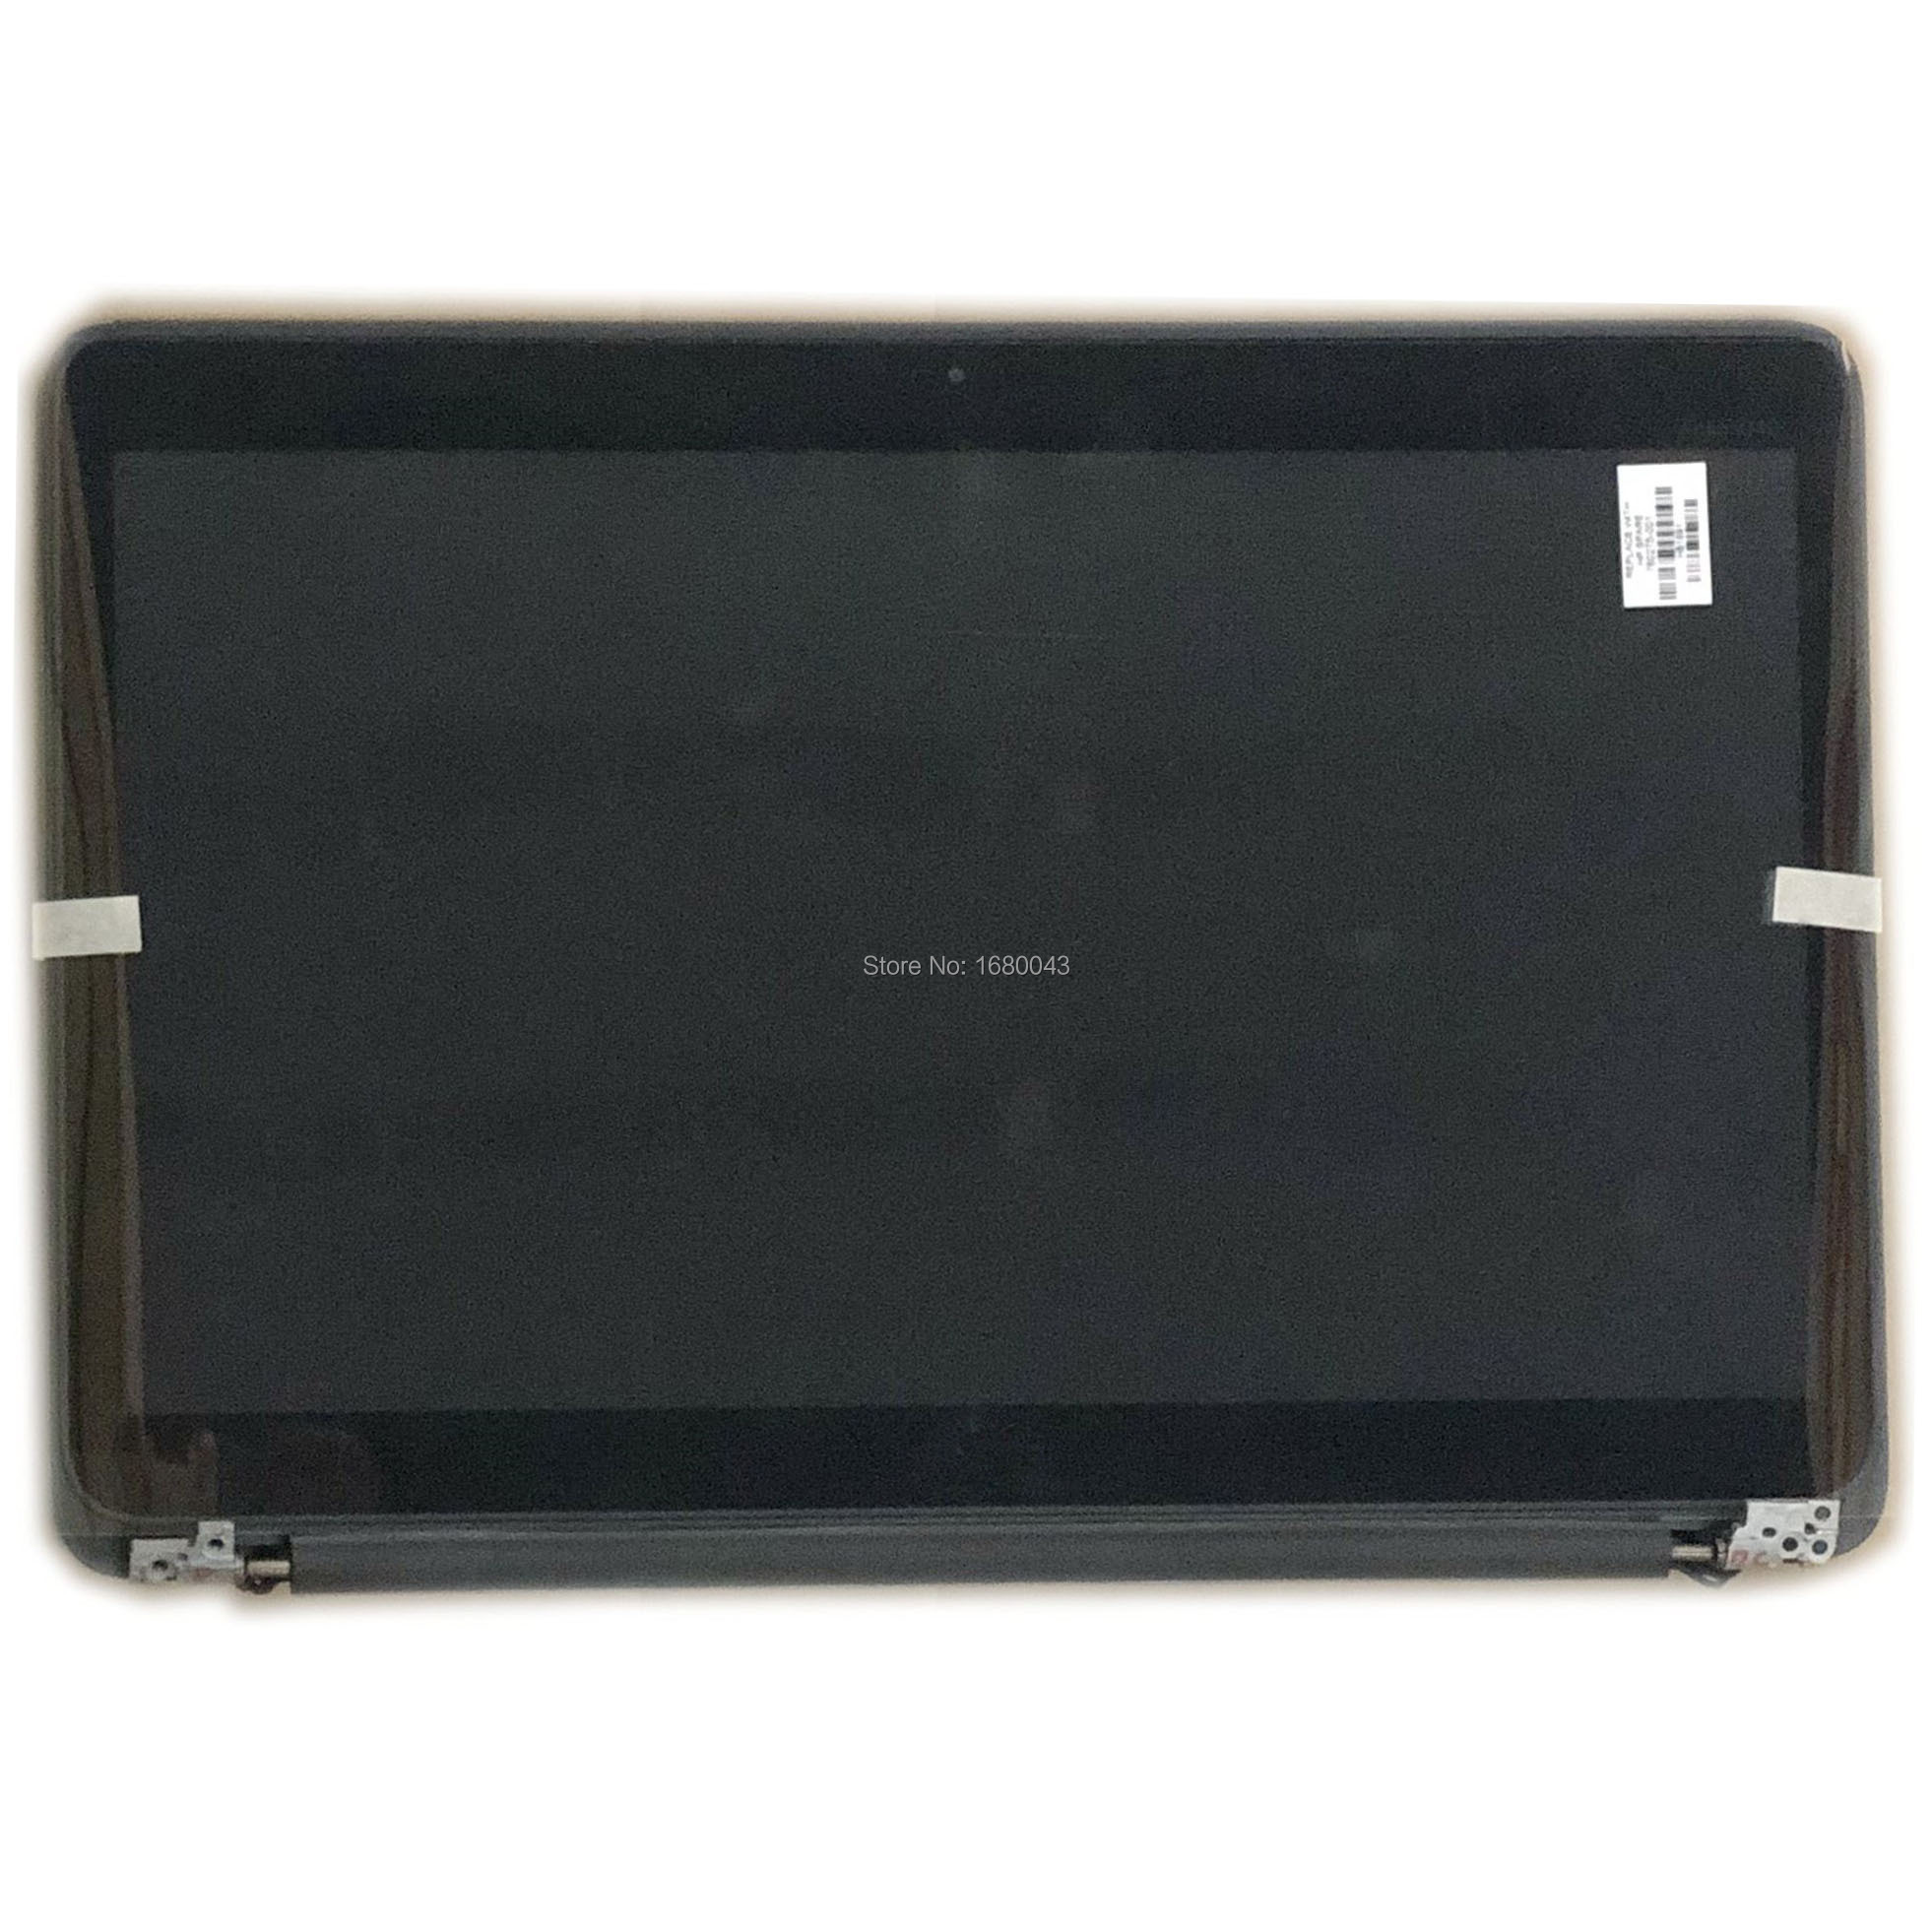 14.0 inch LCD LED Screen Assembly Complete Glass Case Upper Half Parts WEBCAM & HINGES for For HP EliteBook Folio 1040 G1 G214.0 inch LCD LED Screen Assembly Complete Glass Case Upper Half Parts WEBCAM & HINGES for For HP EliteBook Folio 1040 G1 G2